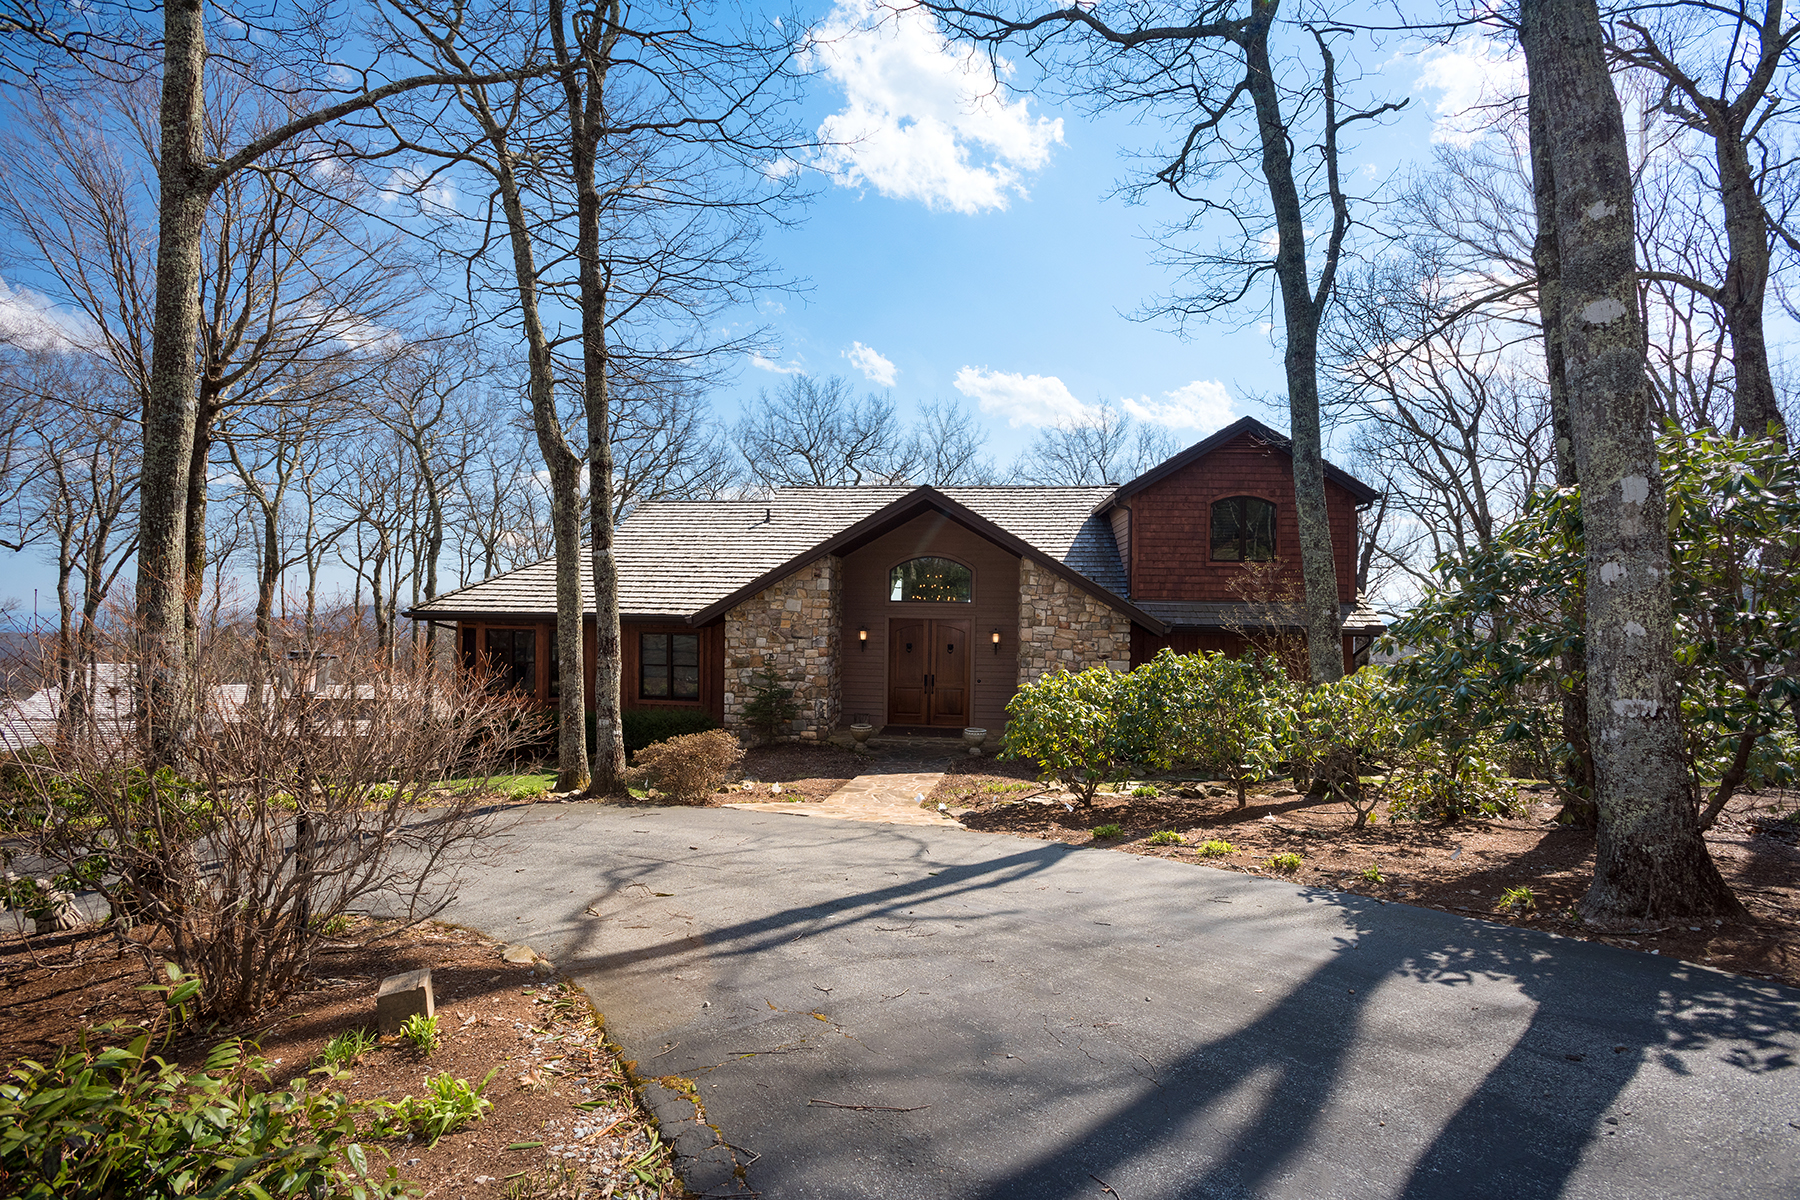 Single Family Home for Sale at 818 Crest Trl , Linville, NC 28646 818 Crest Trl, Linville, North Carolina 28646 United States